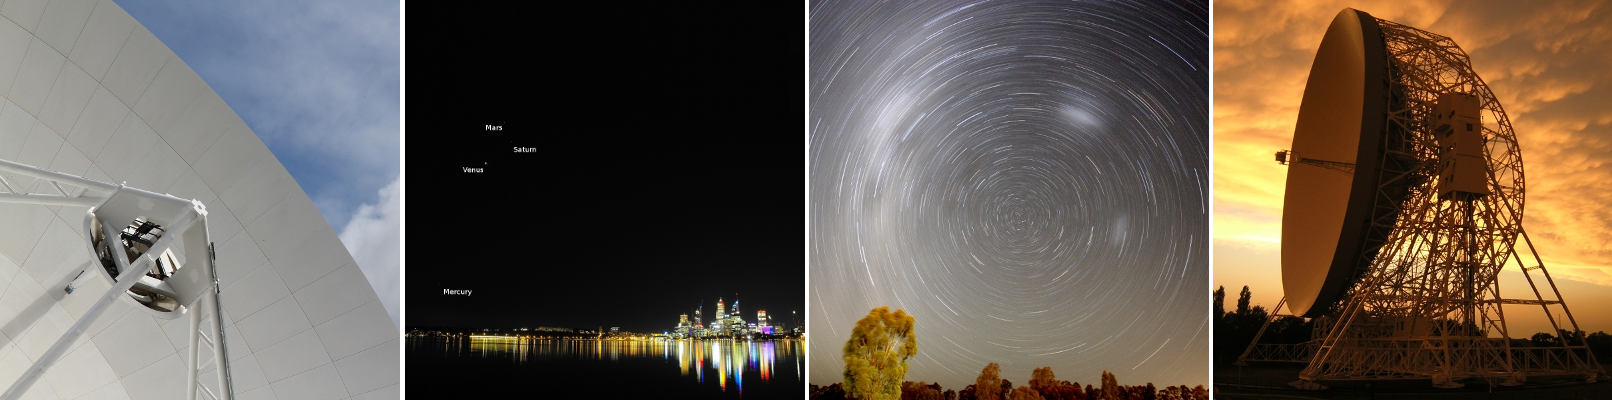 New Norcia, planets over Perth, star trails at Parkes, the Lovell telescope